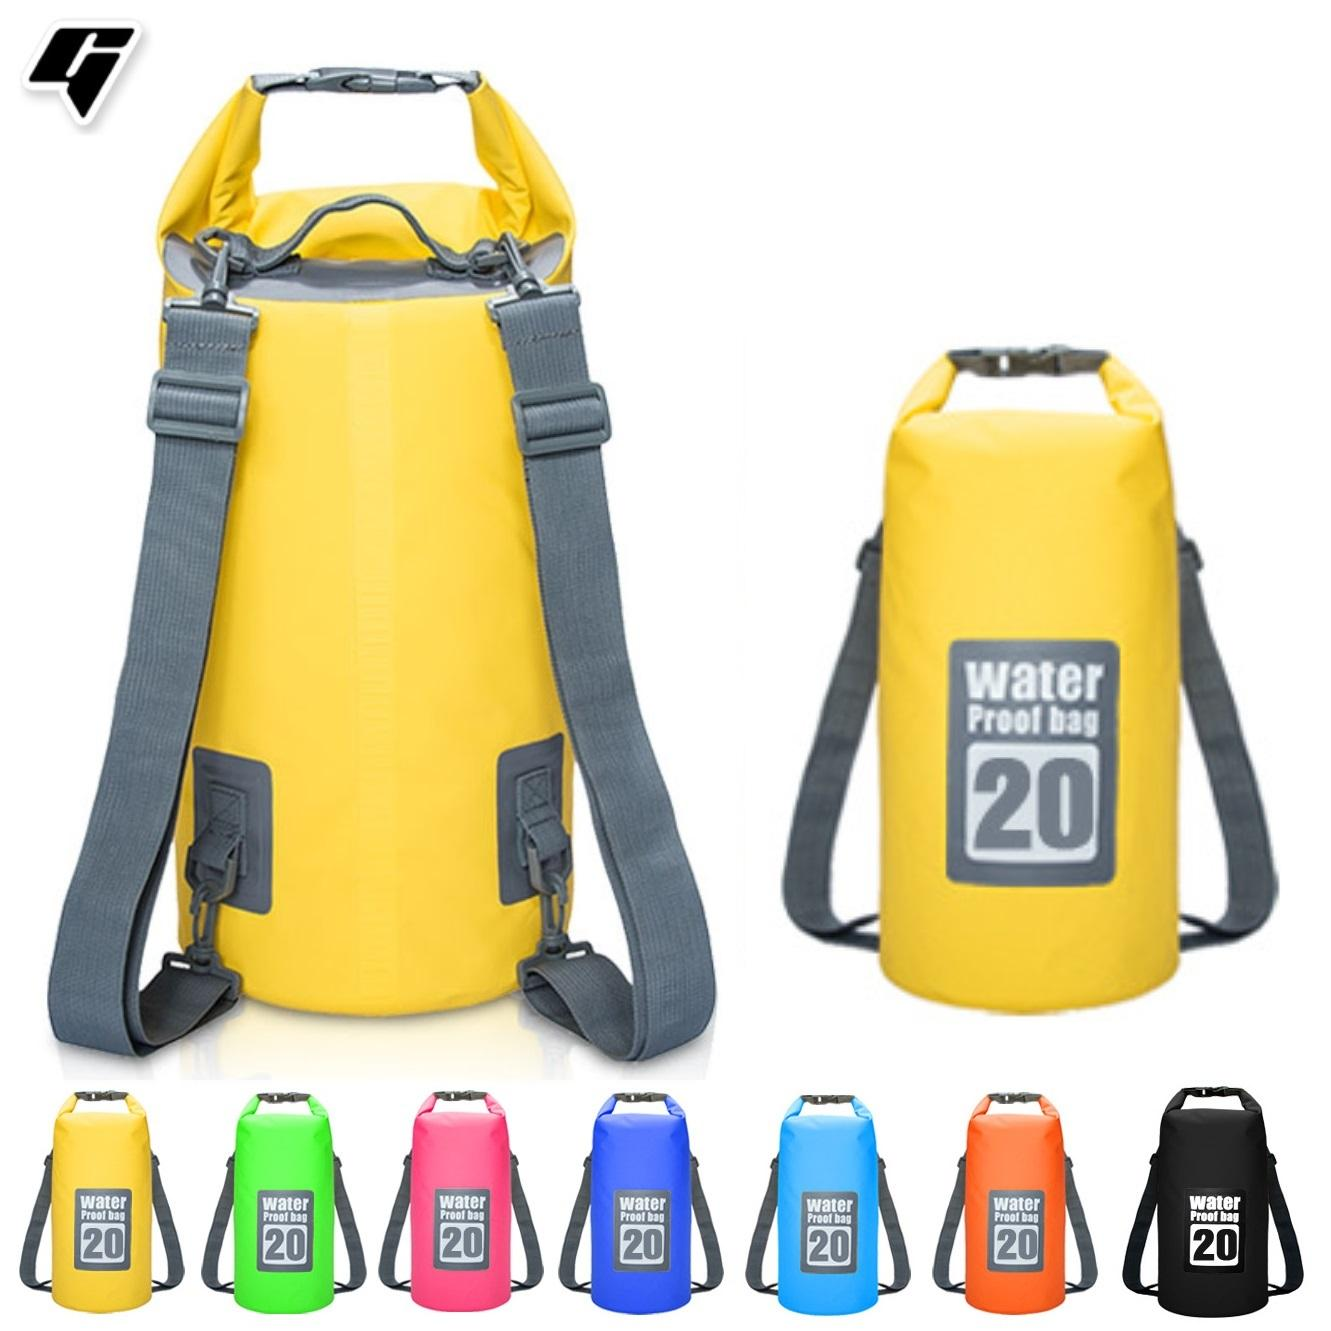 f3c0650ef90 Watersports Dry Bag for sale - Watersports Bags online brands ...